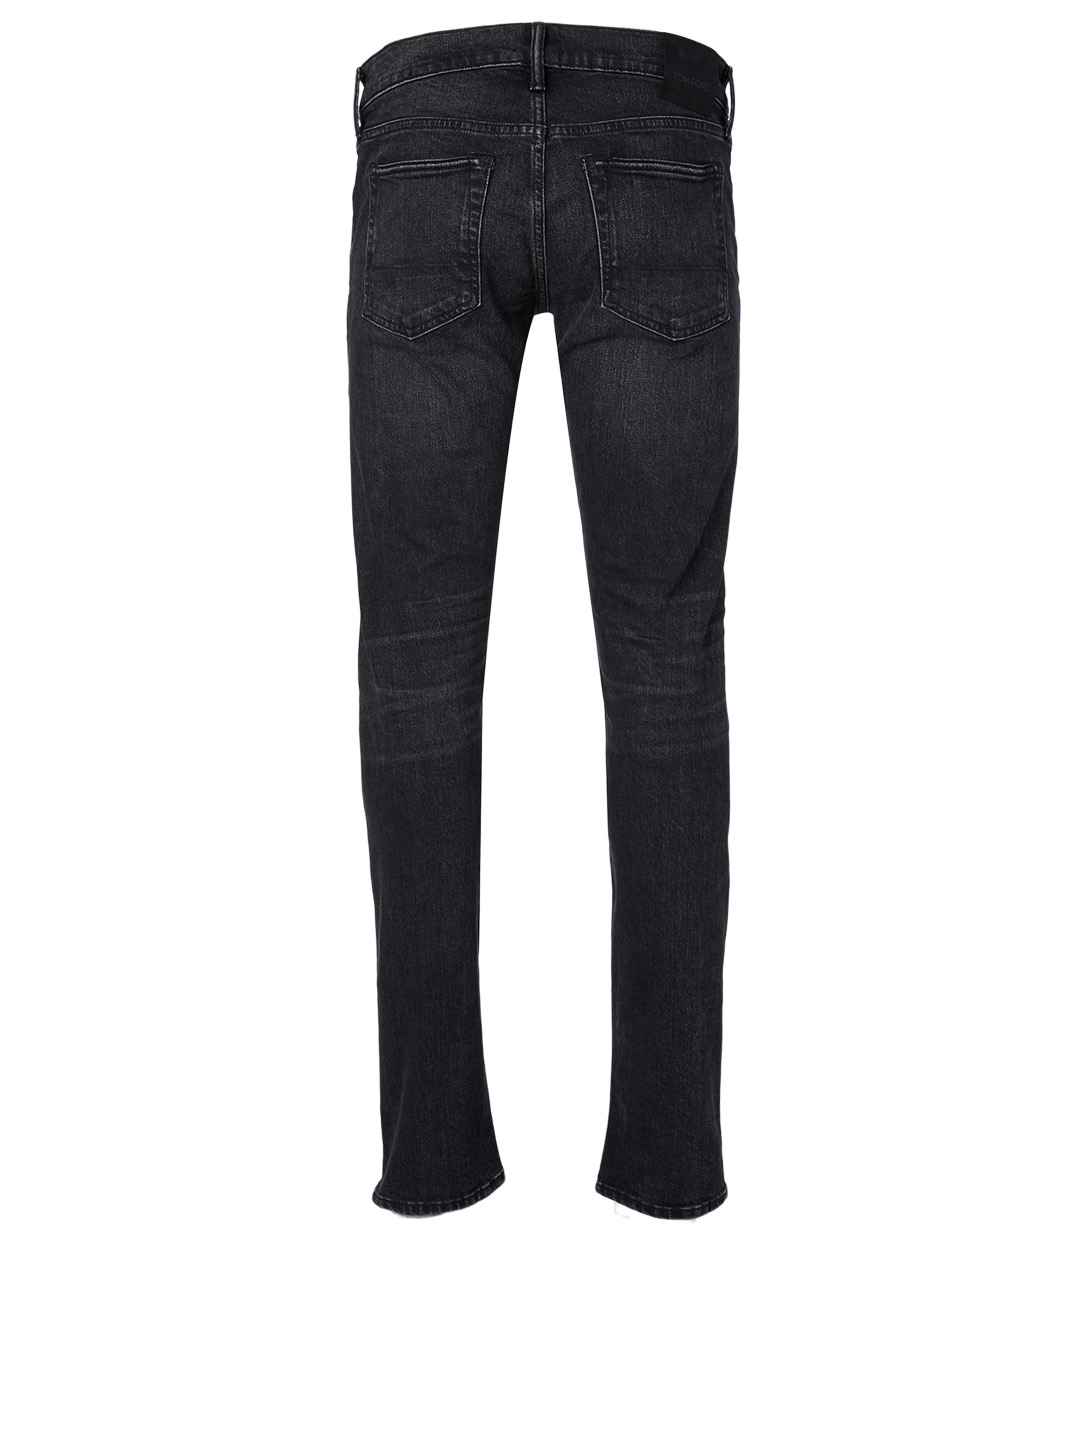 TOM FORD Cotton-Blend Slim-Fit Jeans Men's Black